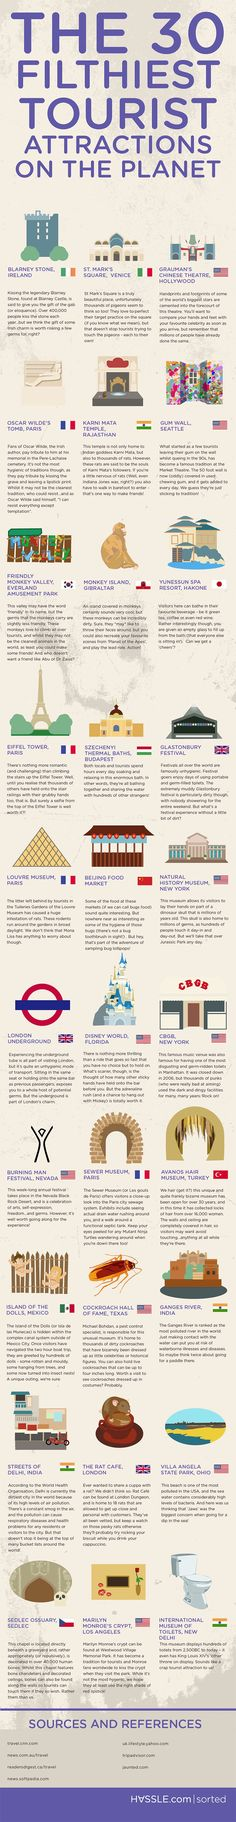 The 30 filthiest tourist attractions on the planet